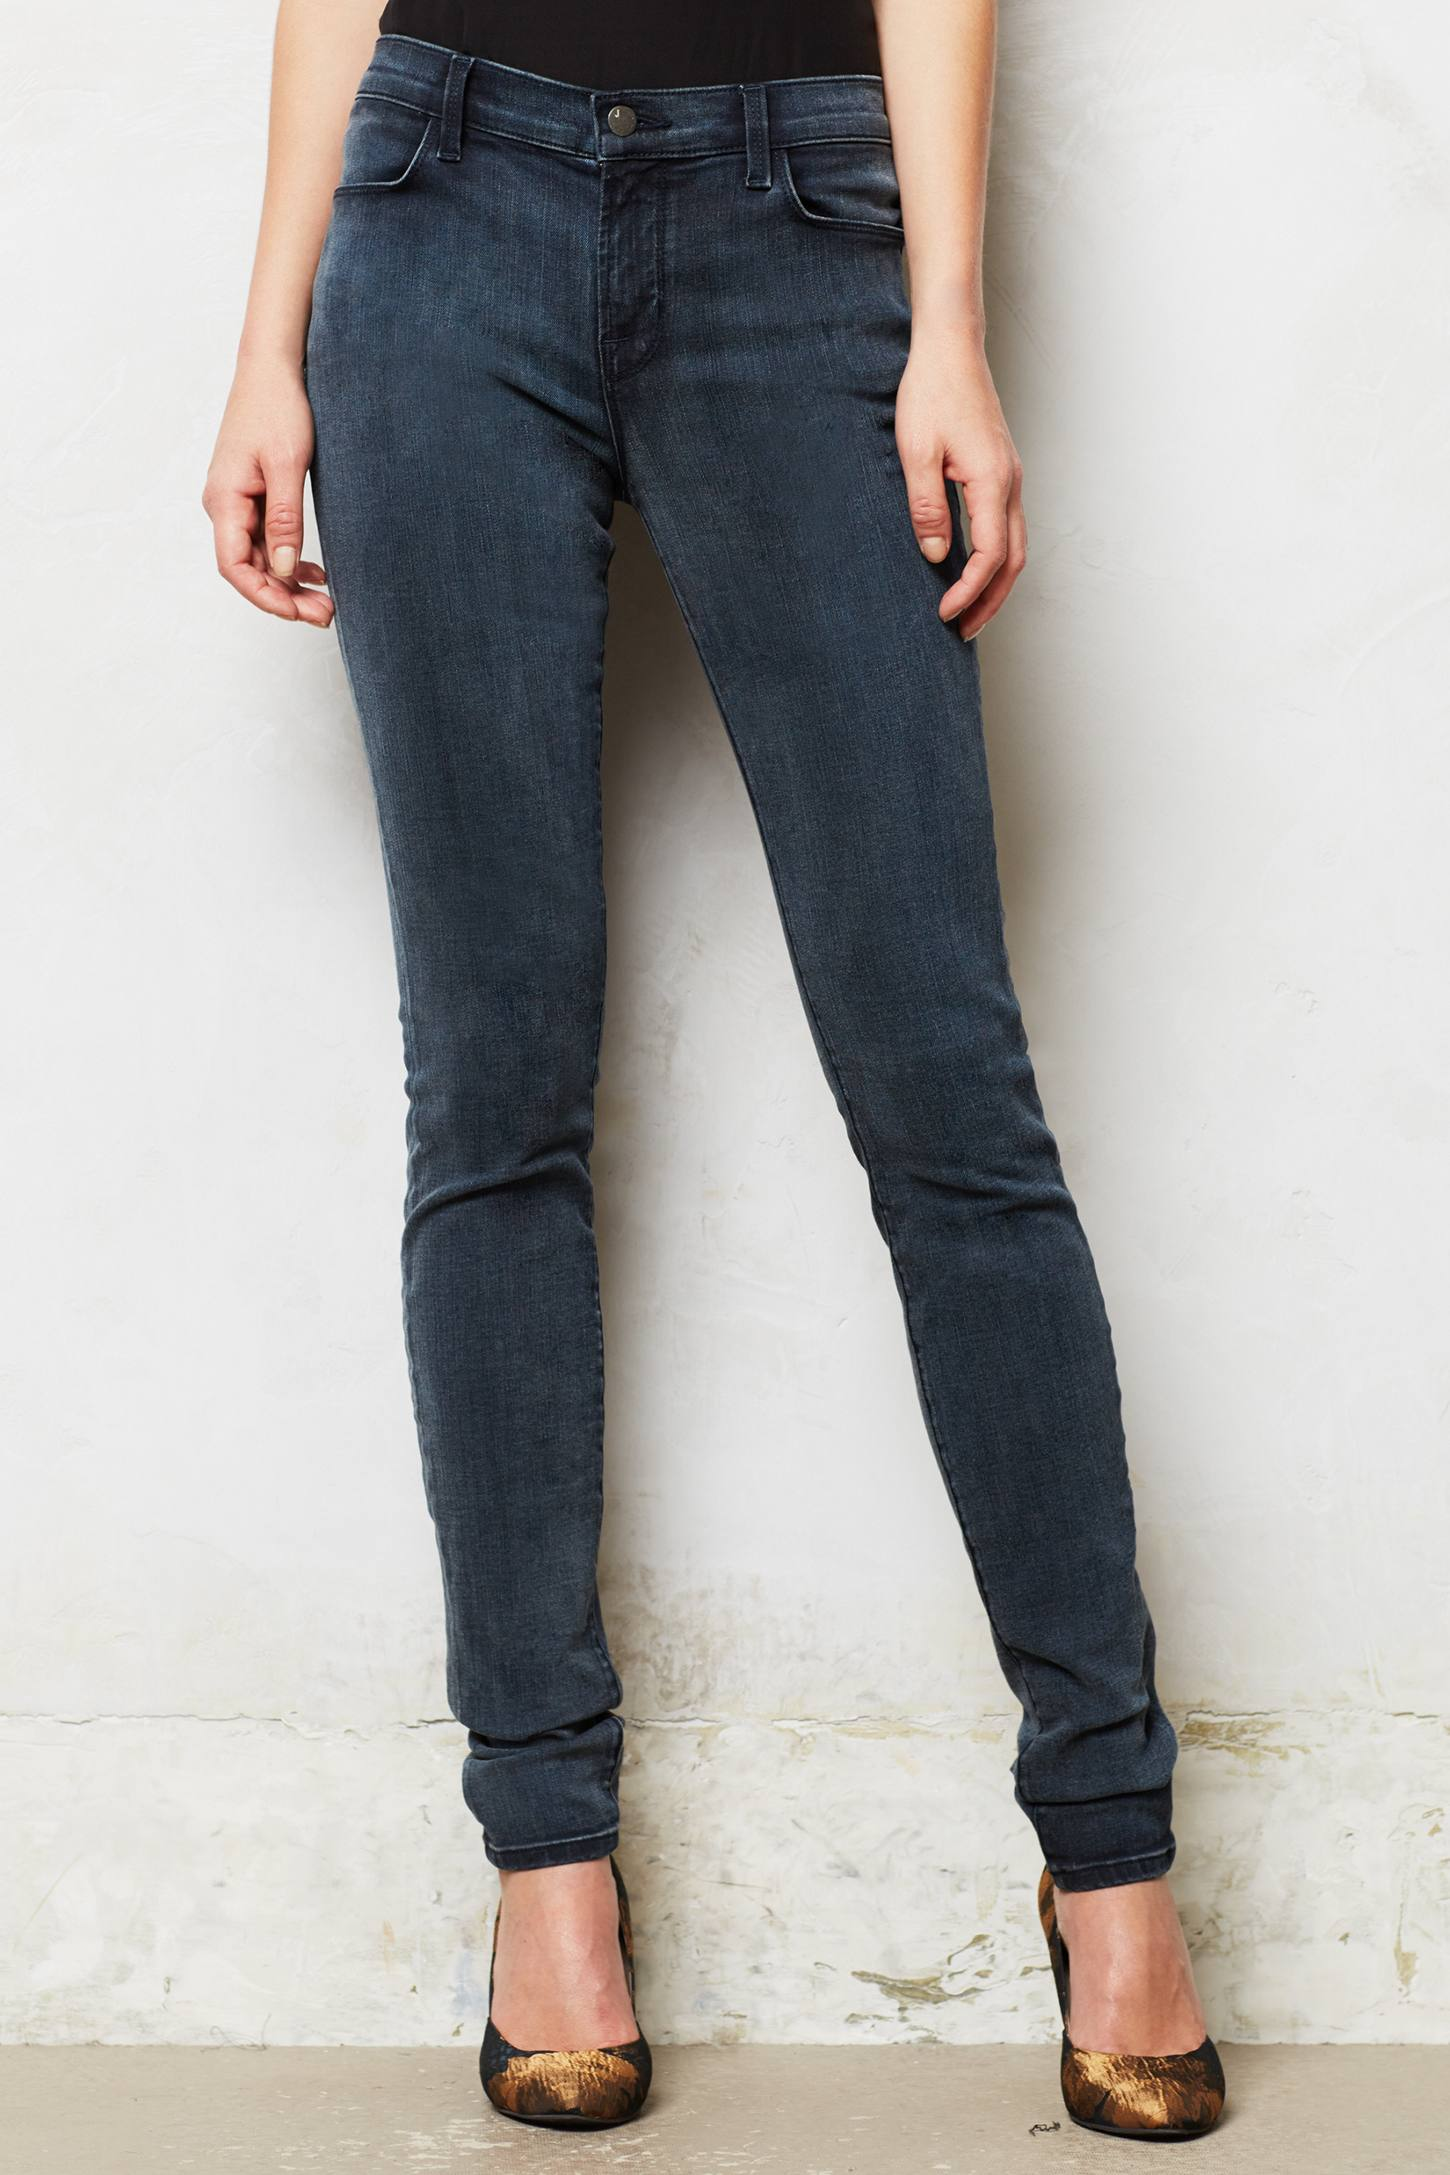 Cheap Skinny Jeans Men